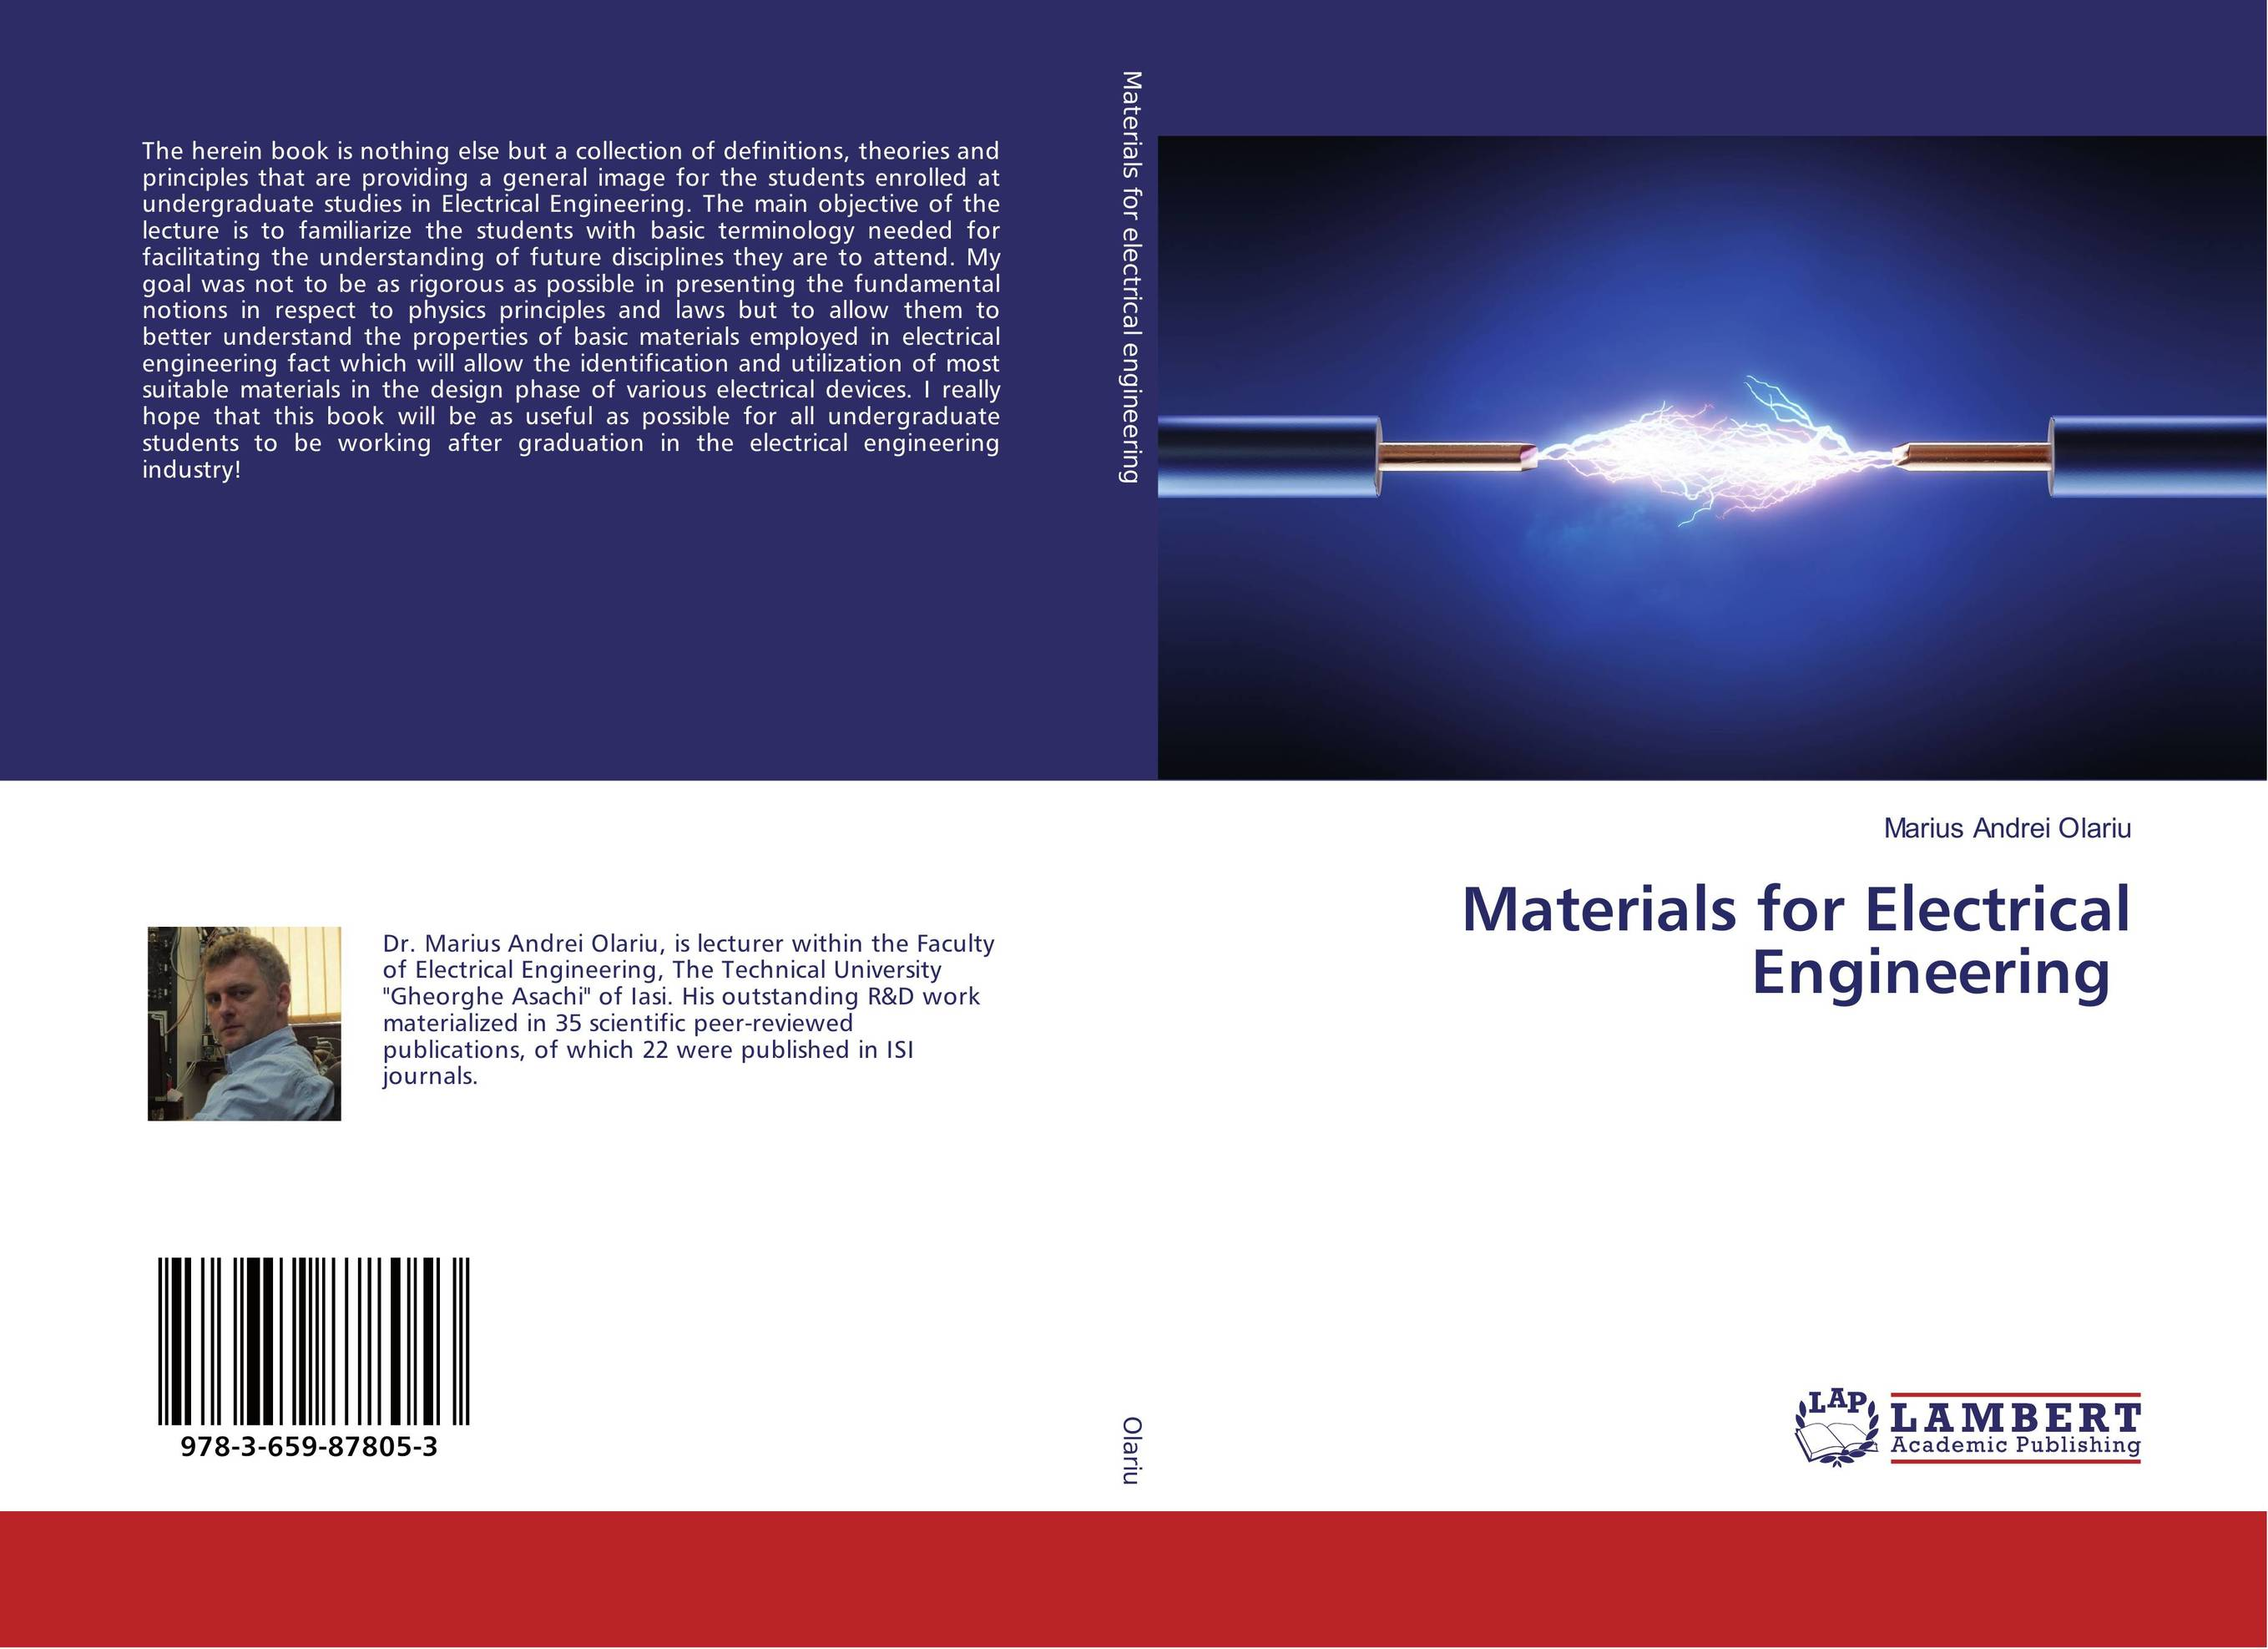 Materials for Electrical Engineering juan martinez vega dielectric materials for electrical engineering